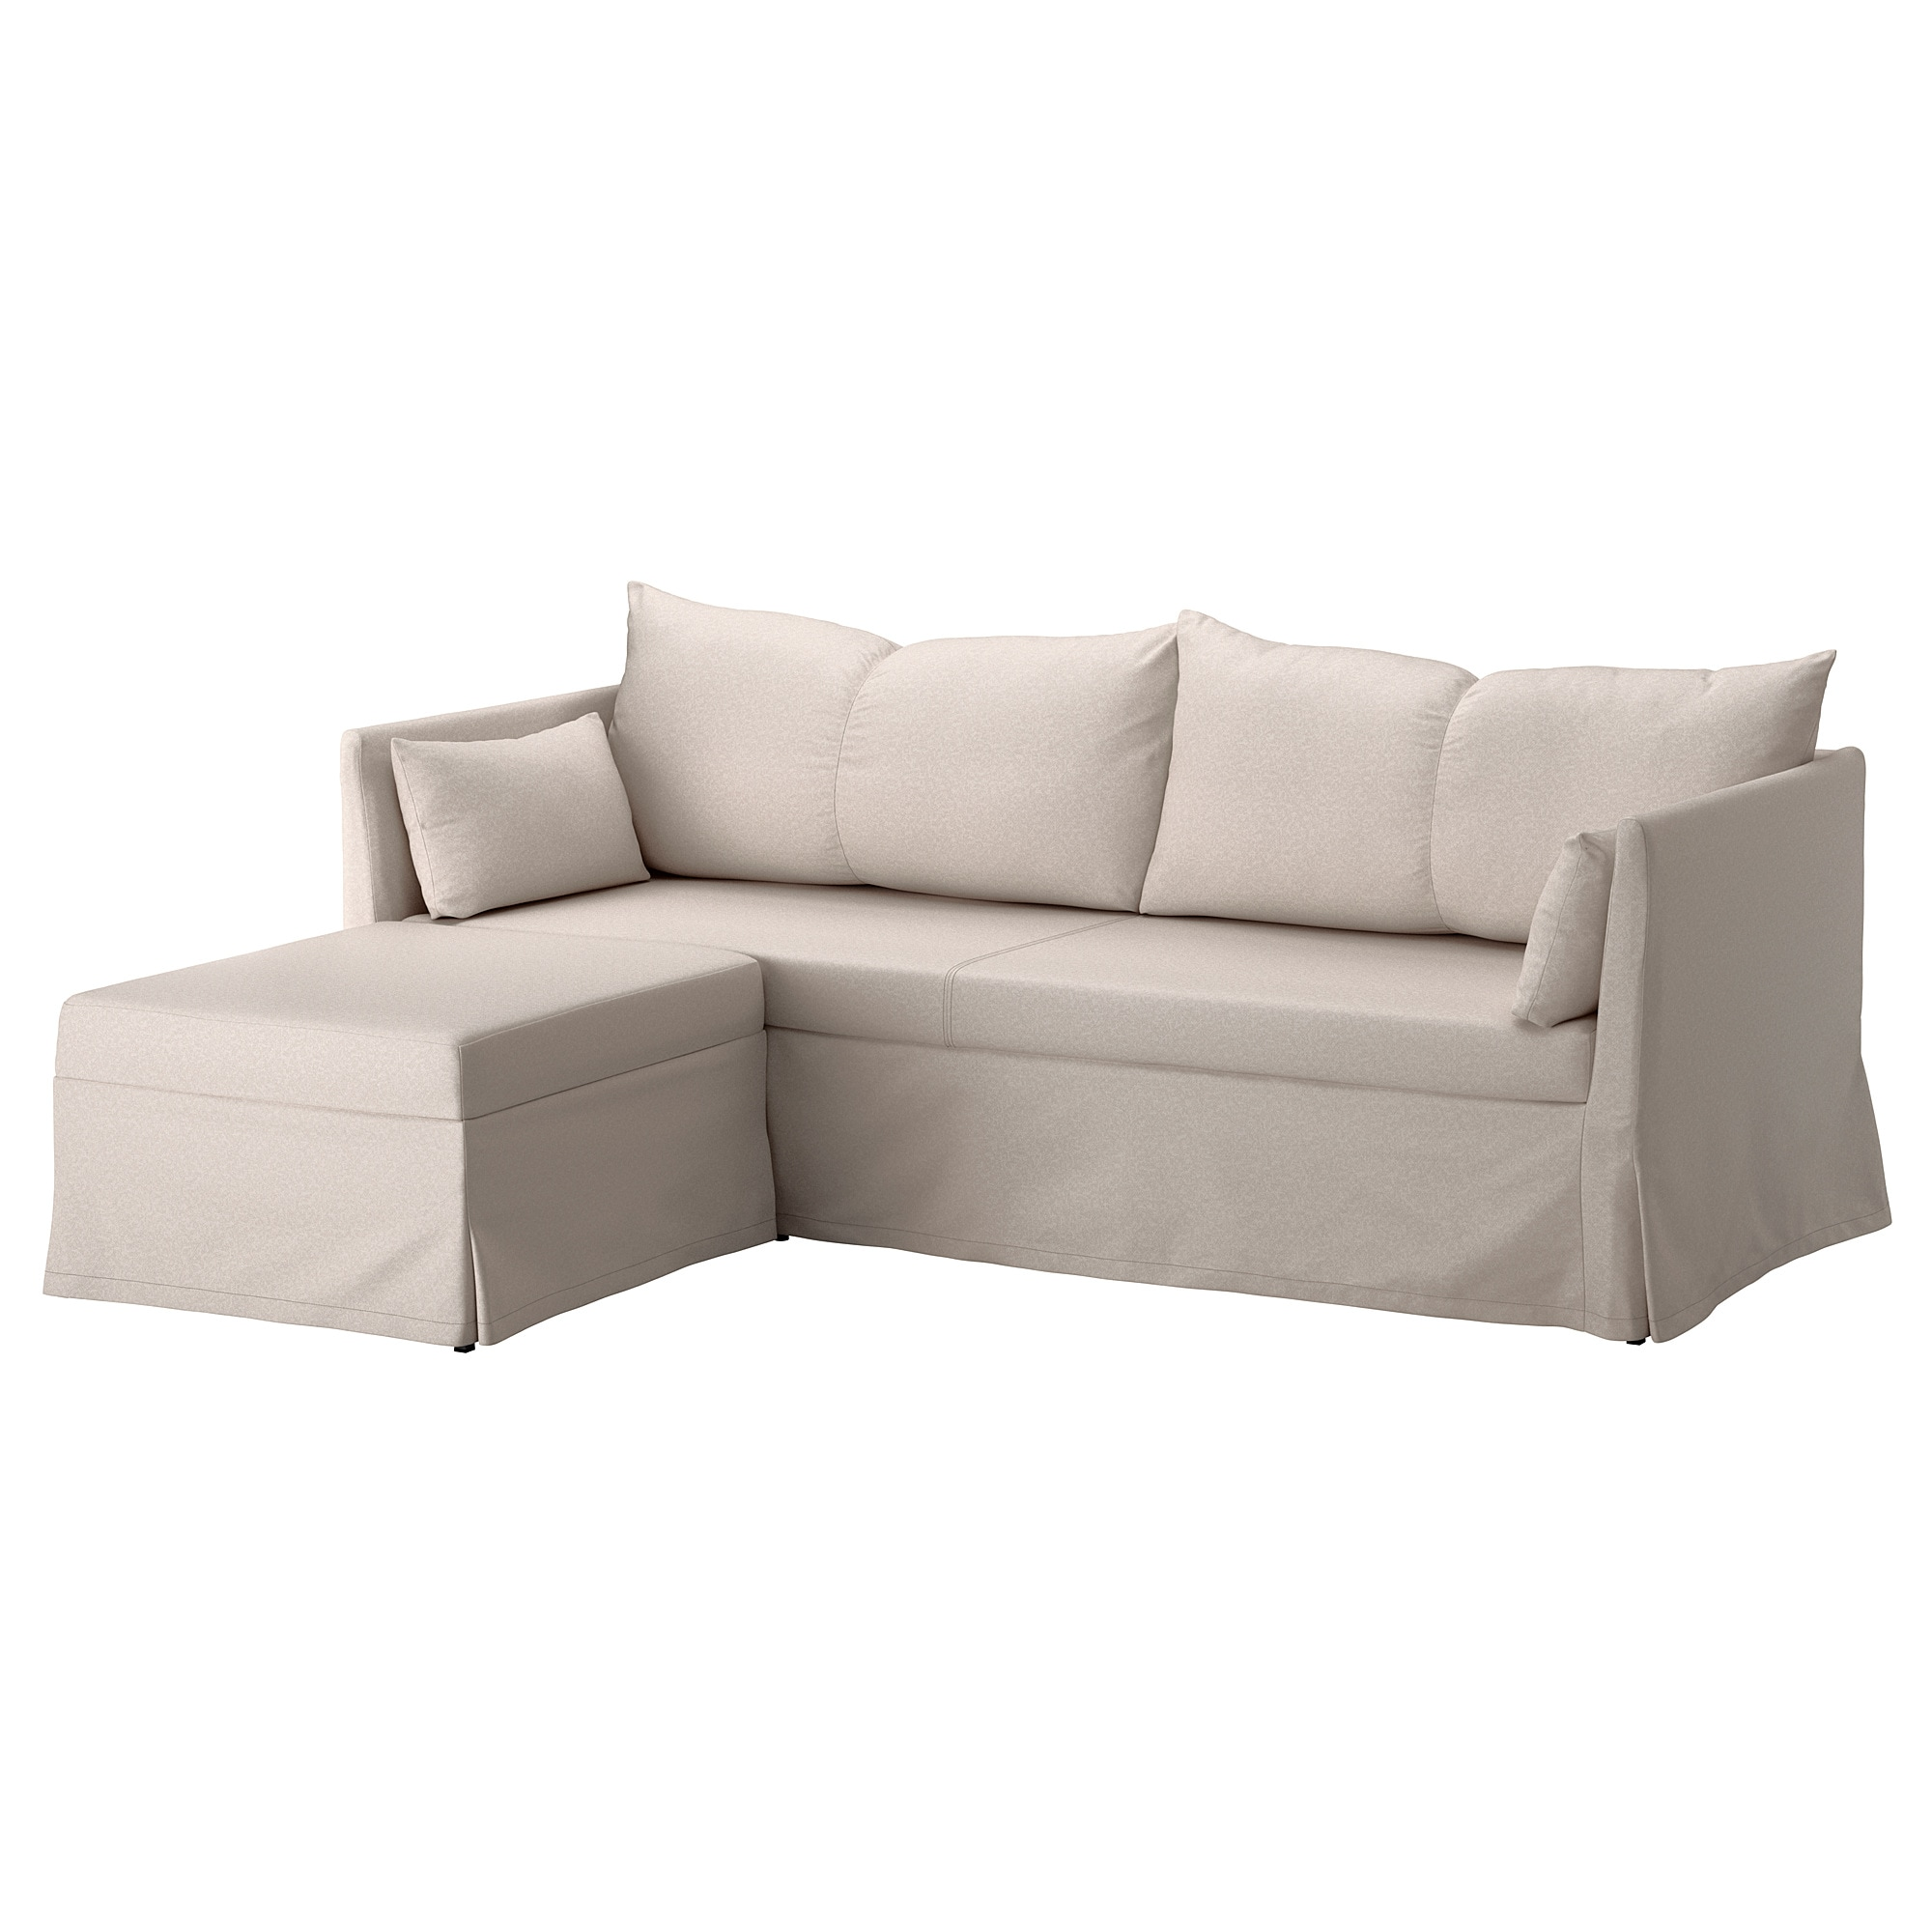 Sofa Foam Inserts Sandbacken Sleeper Sectional 3 Seat Lofallet Beige